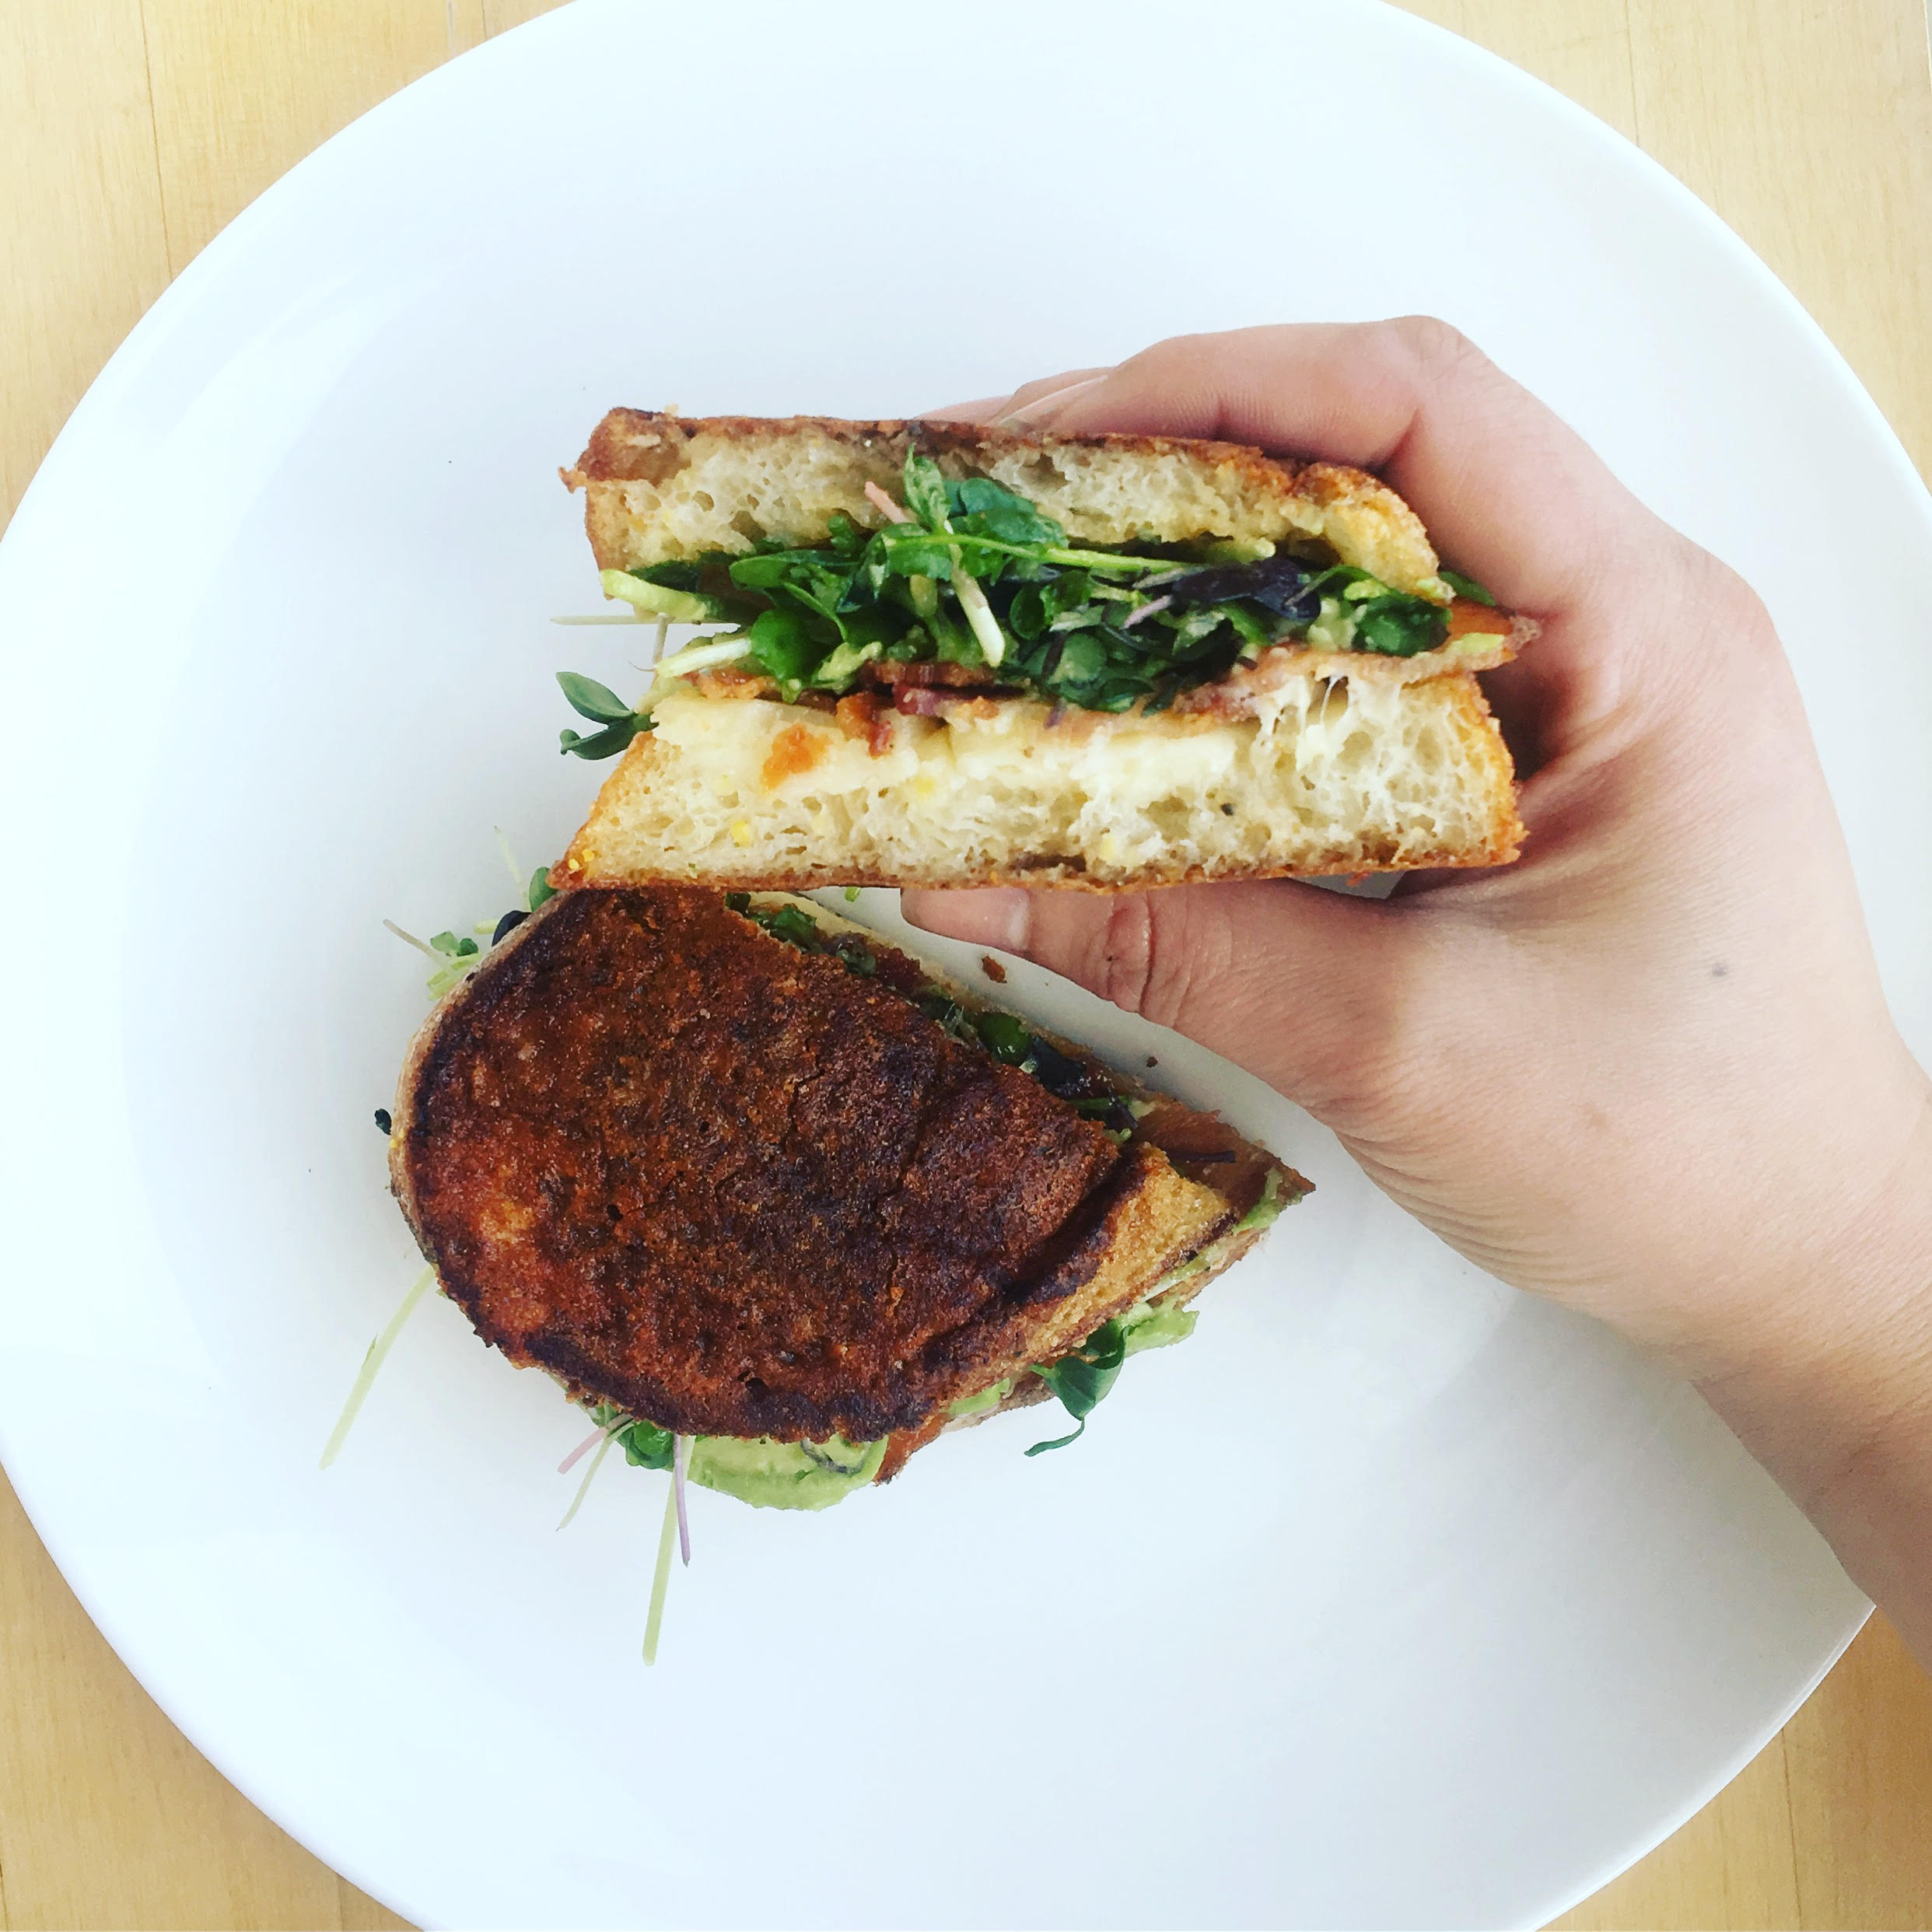 Grilled Cheese Sandwich With Black Garlic Mayo